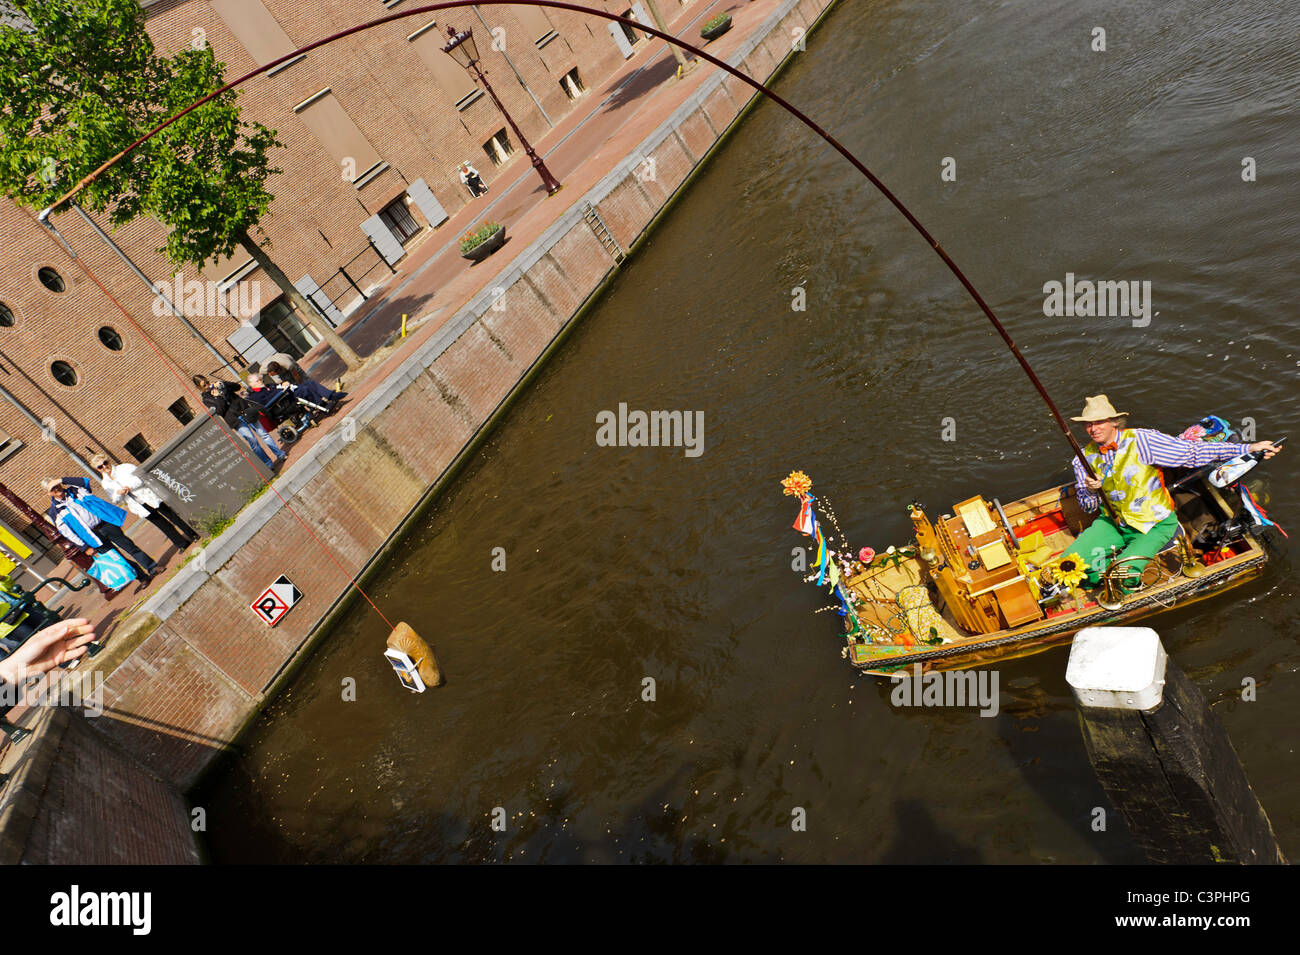 Reinier Sijpkens plays the trumpet on an Amsterdam canal - Stock Image